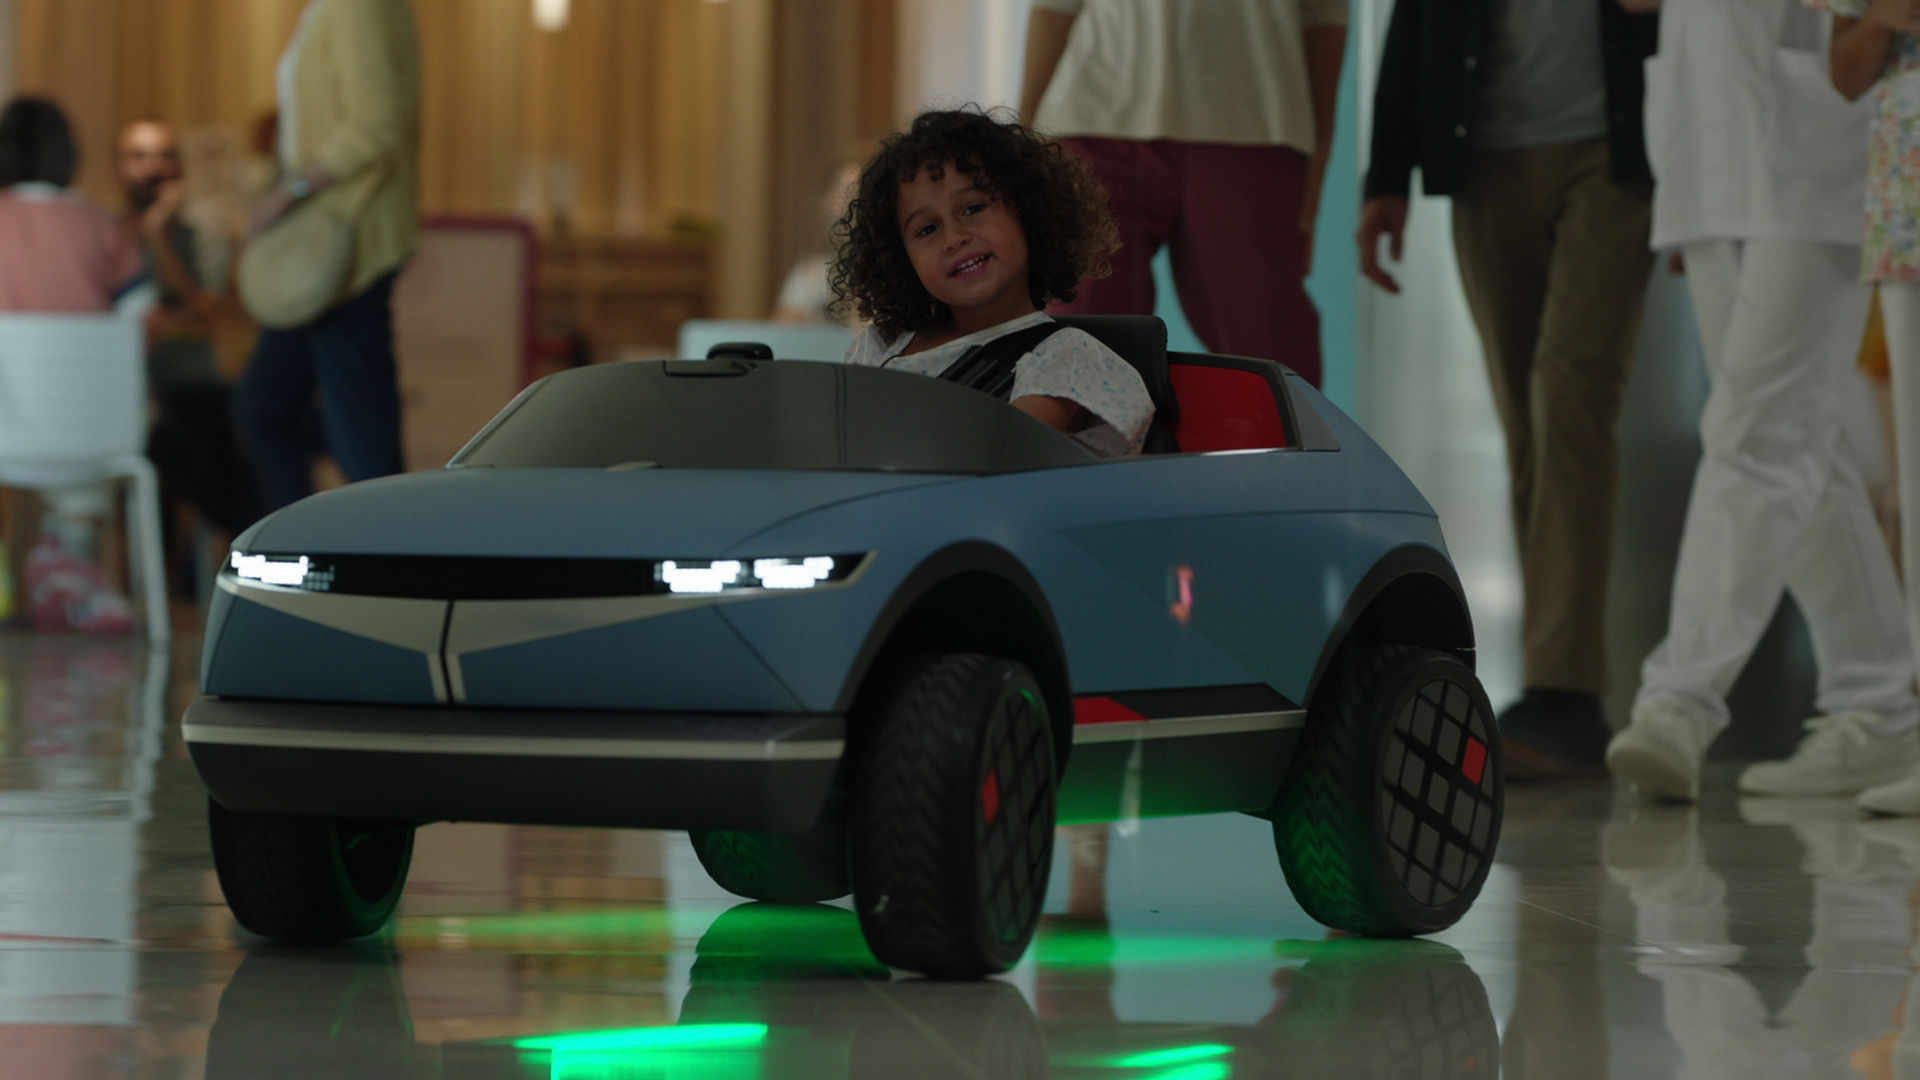 Hyundai-ev-45-kid-car-balcelona-hospital-5